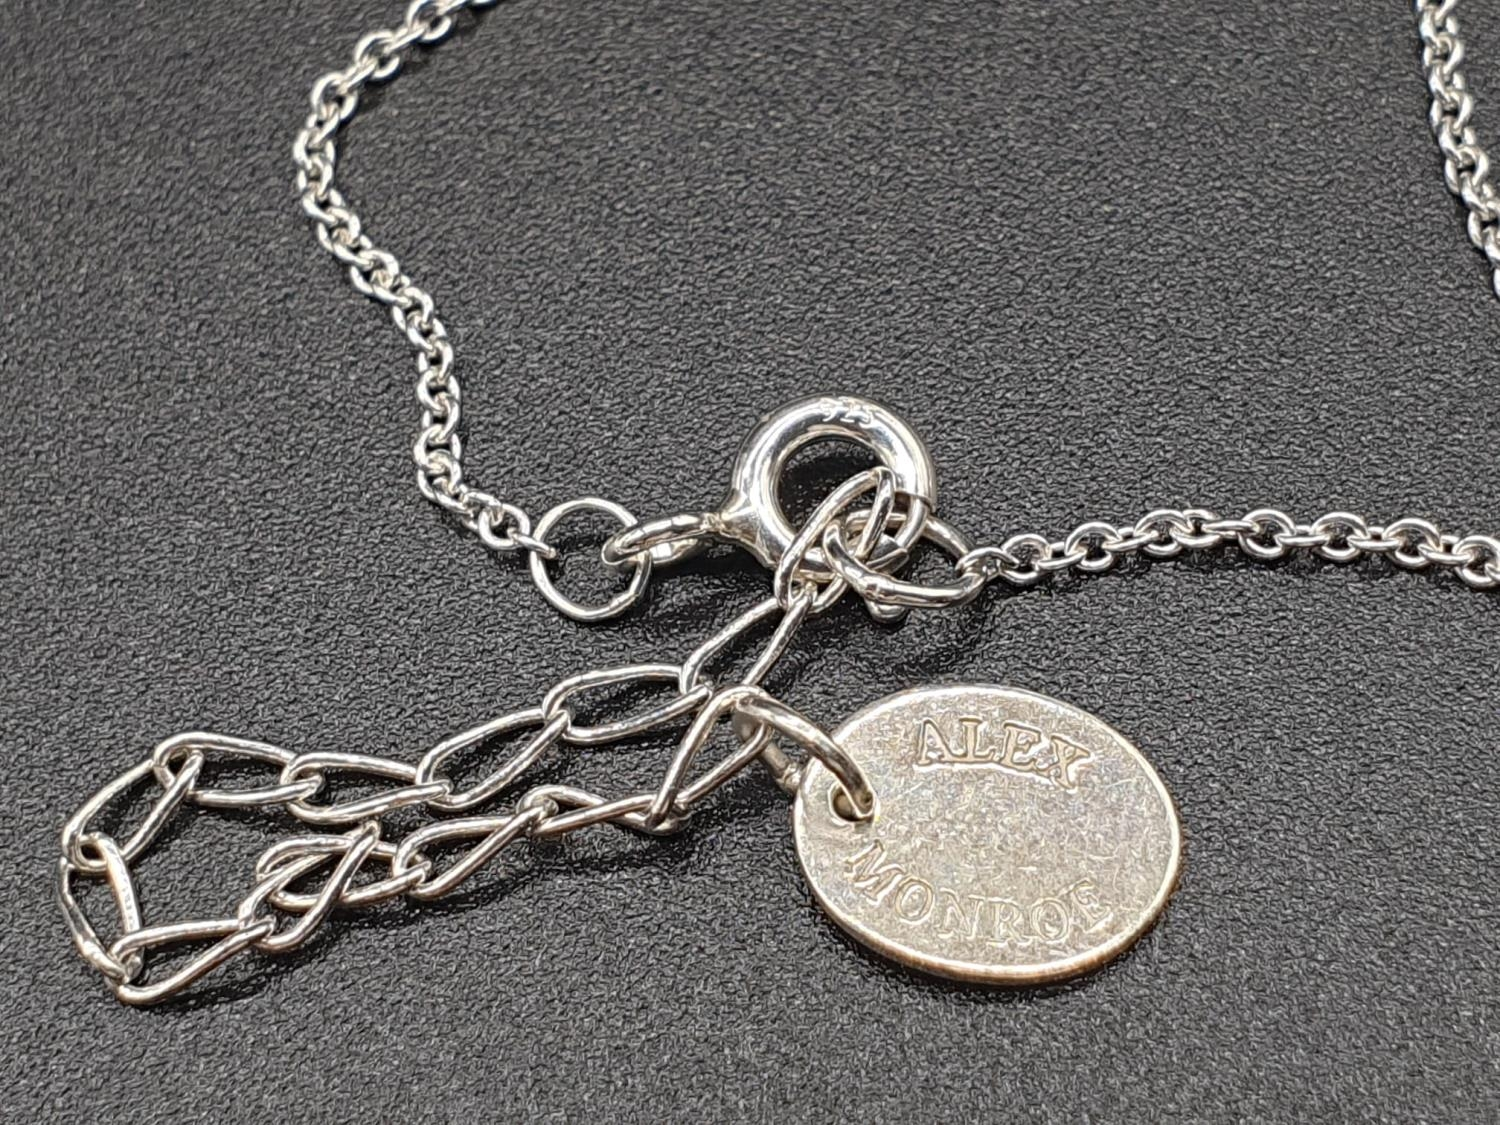 ALEX MONROE STERLING SILVER BIG FEATHER PENDANT ON EXTENDABLE NECKLACE - Image 6 of 6